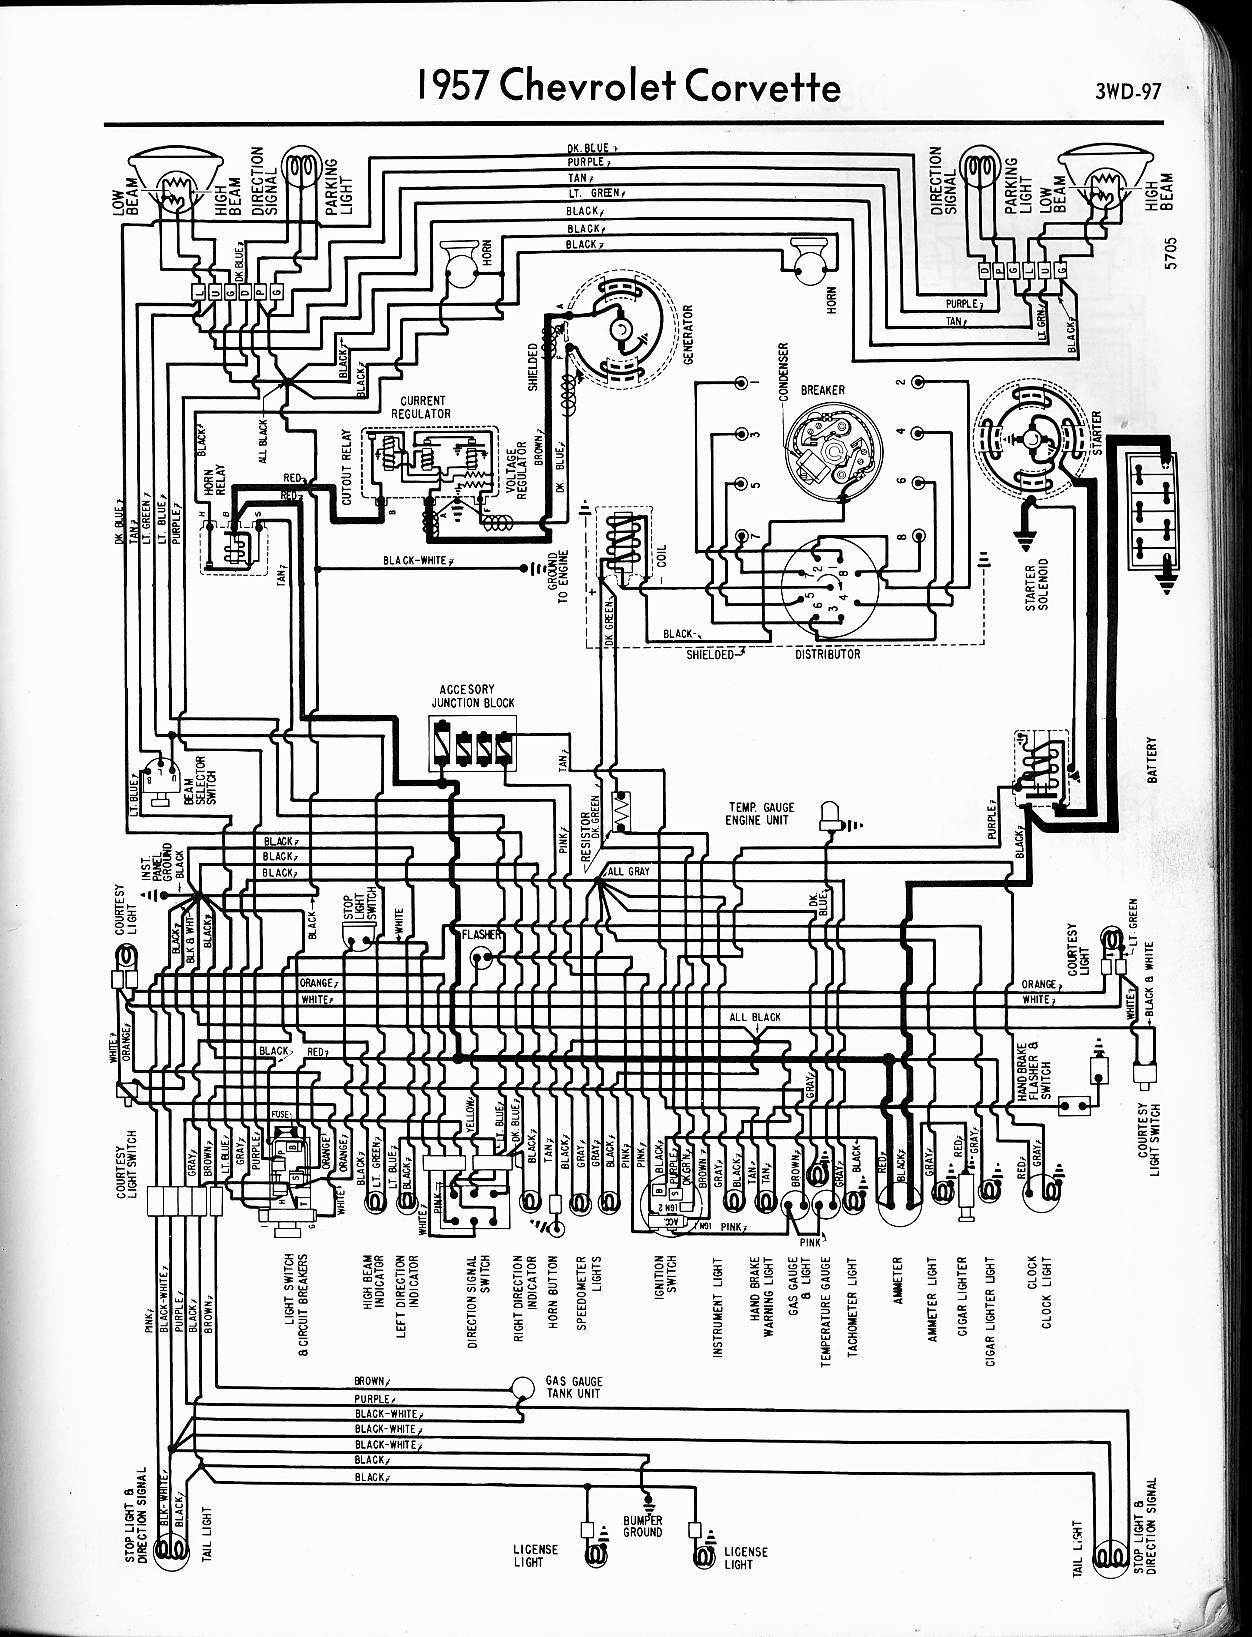 MWireChev57_3WD 097 57 65 chevy wiring diagrams chevy wiring schematics at mifinder.co